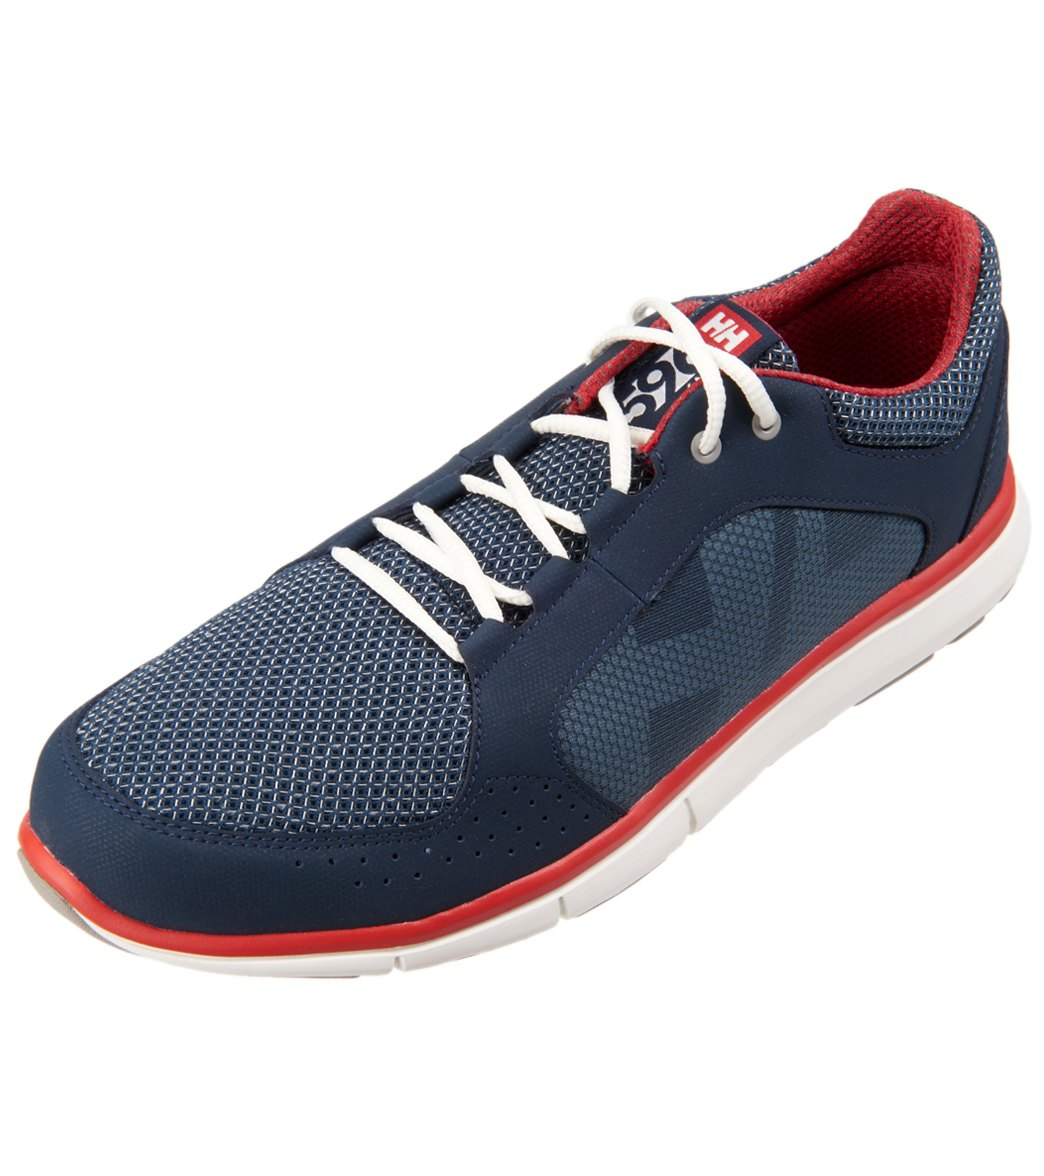 b82c28614f5 Helly Hansen Men's Ahiga V3 Hydropower Water Shoe at SwimOutlet.com - Free  Shipping